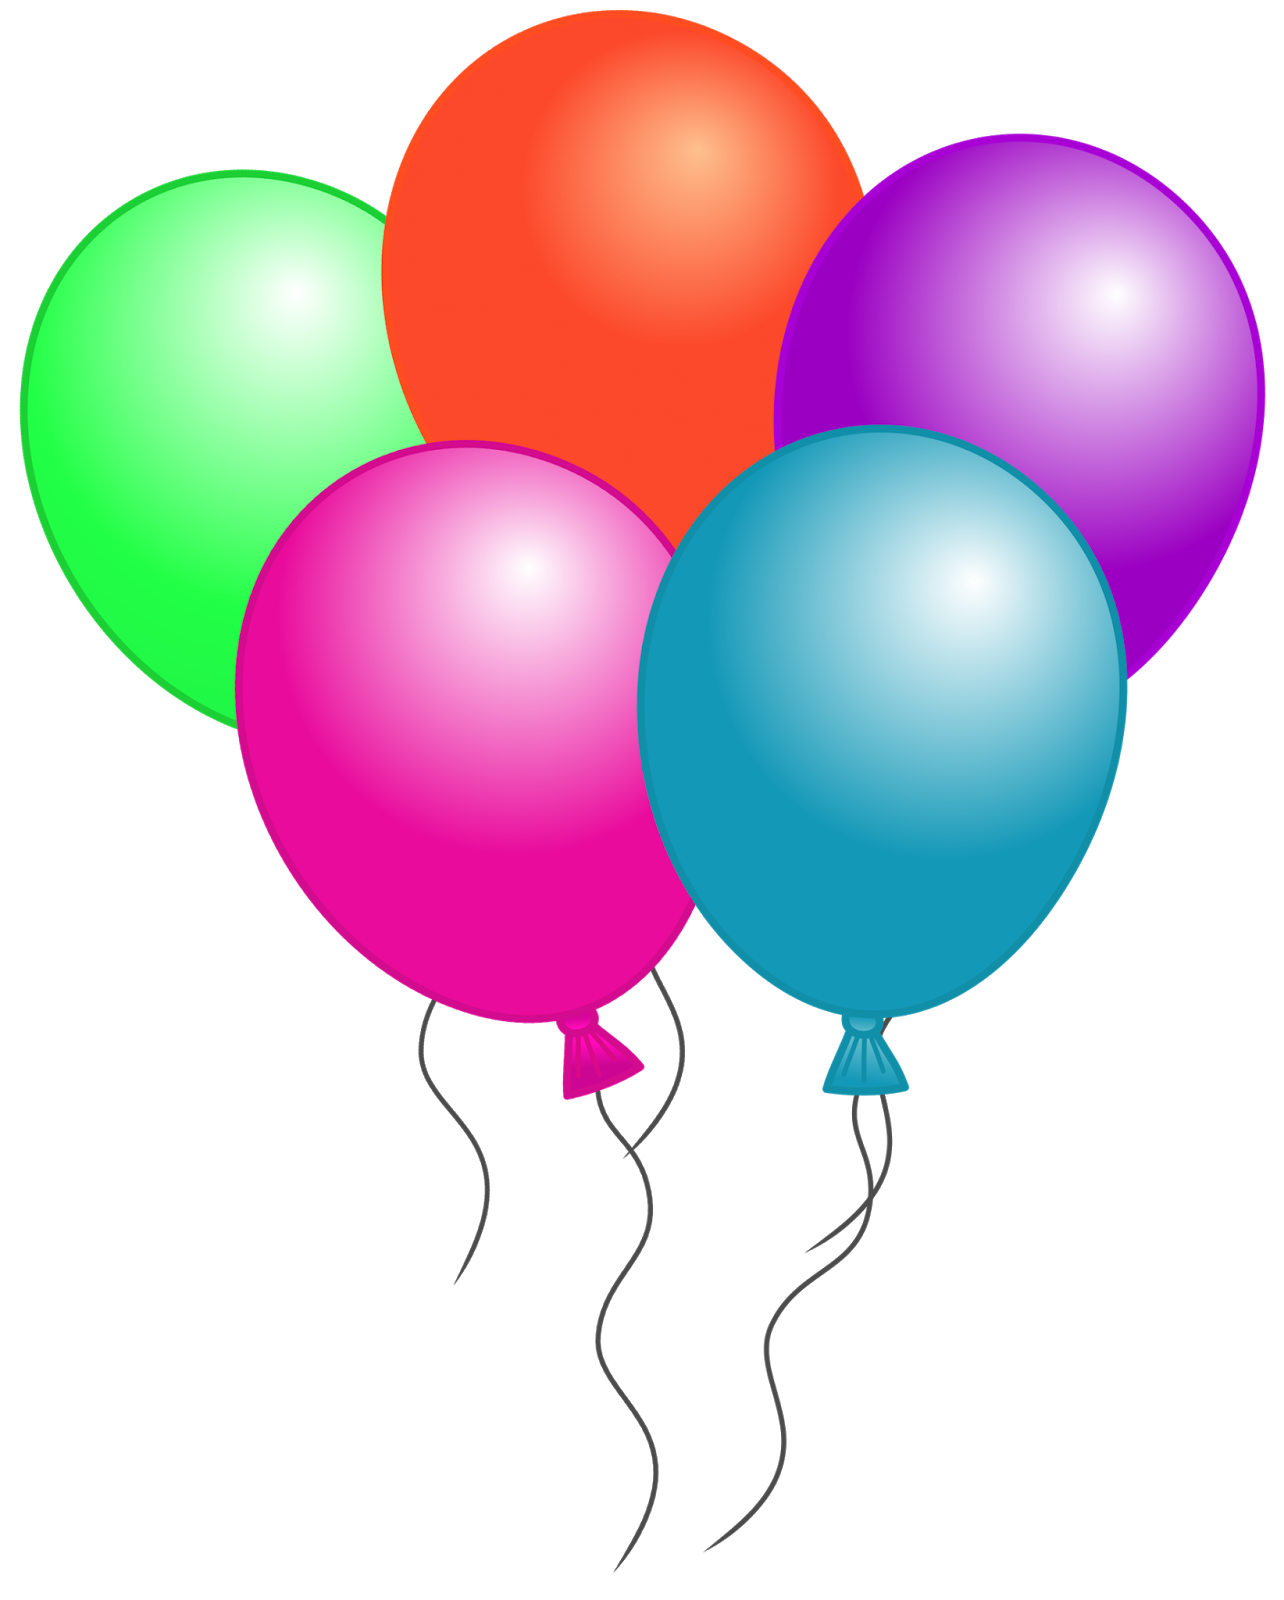 17 Free Birthday Balloon Graphics Images